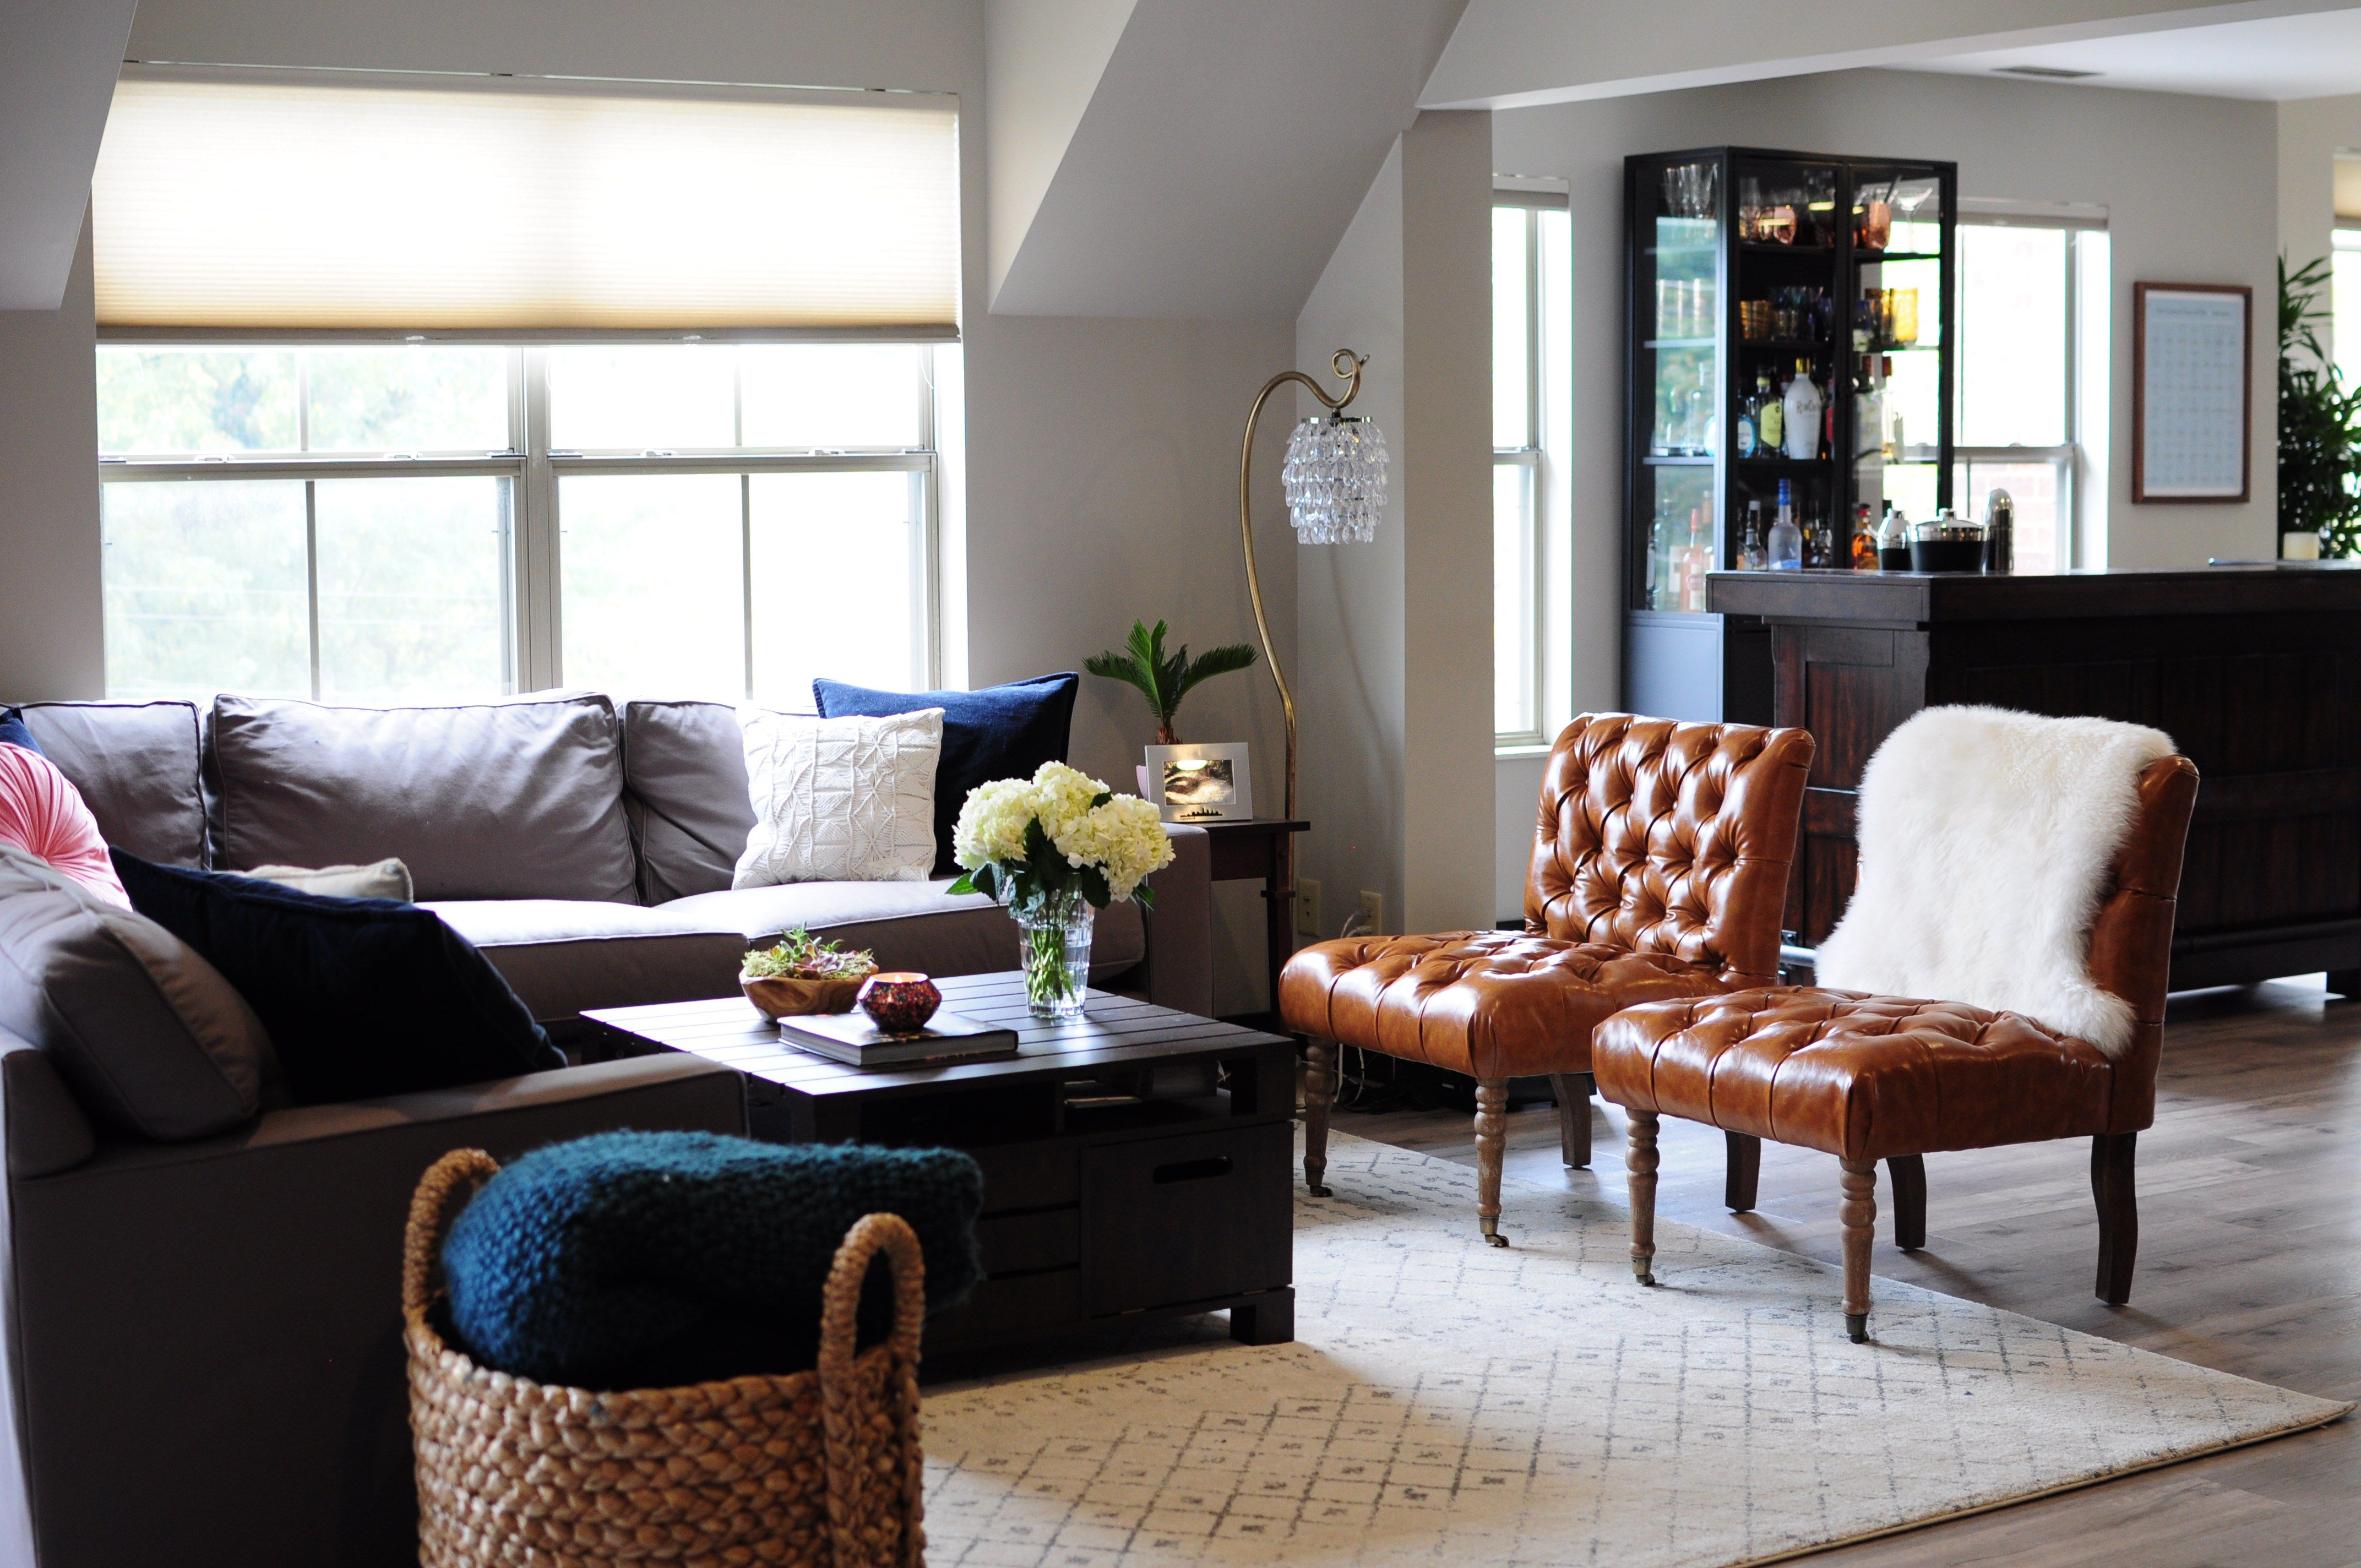 Eclectic Glam Condo Reveal The Living Room is part of Eclectic Living Room Glam - Today I'm excited to share the next room in the Eclectic Glam Condo Reveal The Living Room! If you missed the dining room and entertaining area reveal, this is the beautiful open floor plan condo of Client L and her boyfriend  They just moved in together and have different styles, hers being eclectic (rustic, industrial, and glam), and his being masculine  We worked together to blend their styles and create a space that finally felt like their home together  Here's a look at the living room! BEFORE EDESIGN They wanted a space with a lot of seating for entertaining, so we went with a modern sectional sofa and pair of tufted leather accent chairs  They both work from home, so this walnut coffee table provides plenty of storage for extra cords, notebooks, folders, etc  We added a touch of feminine glam with a blush round velvet pillow and sheepskin rug, as well as eclectic interest with macrame pillows and a Moroccan trellis rug  AFTER Winter is coming! Extra throws are stored away perfectly in this beachcomber basket, a personal favorite of mine! Last but not least, we'll be sharing the home office soon  Hope you'll check it out! GET THE LOOK xx, Related